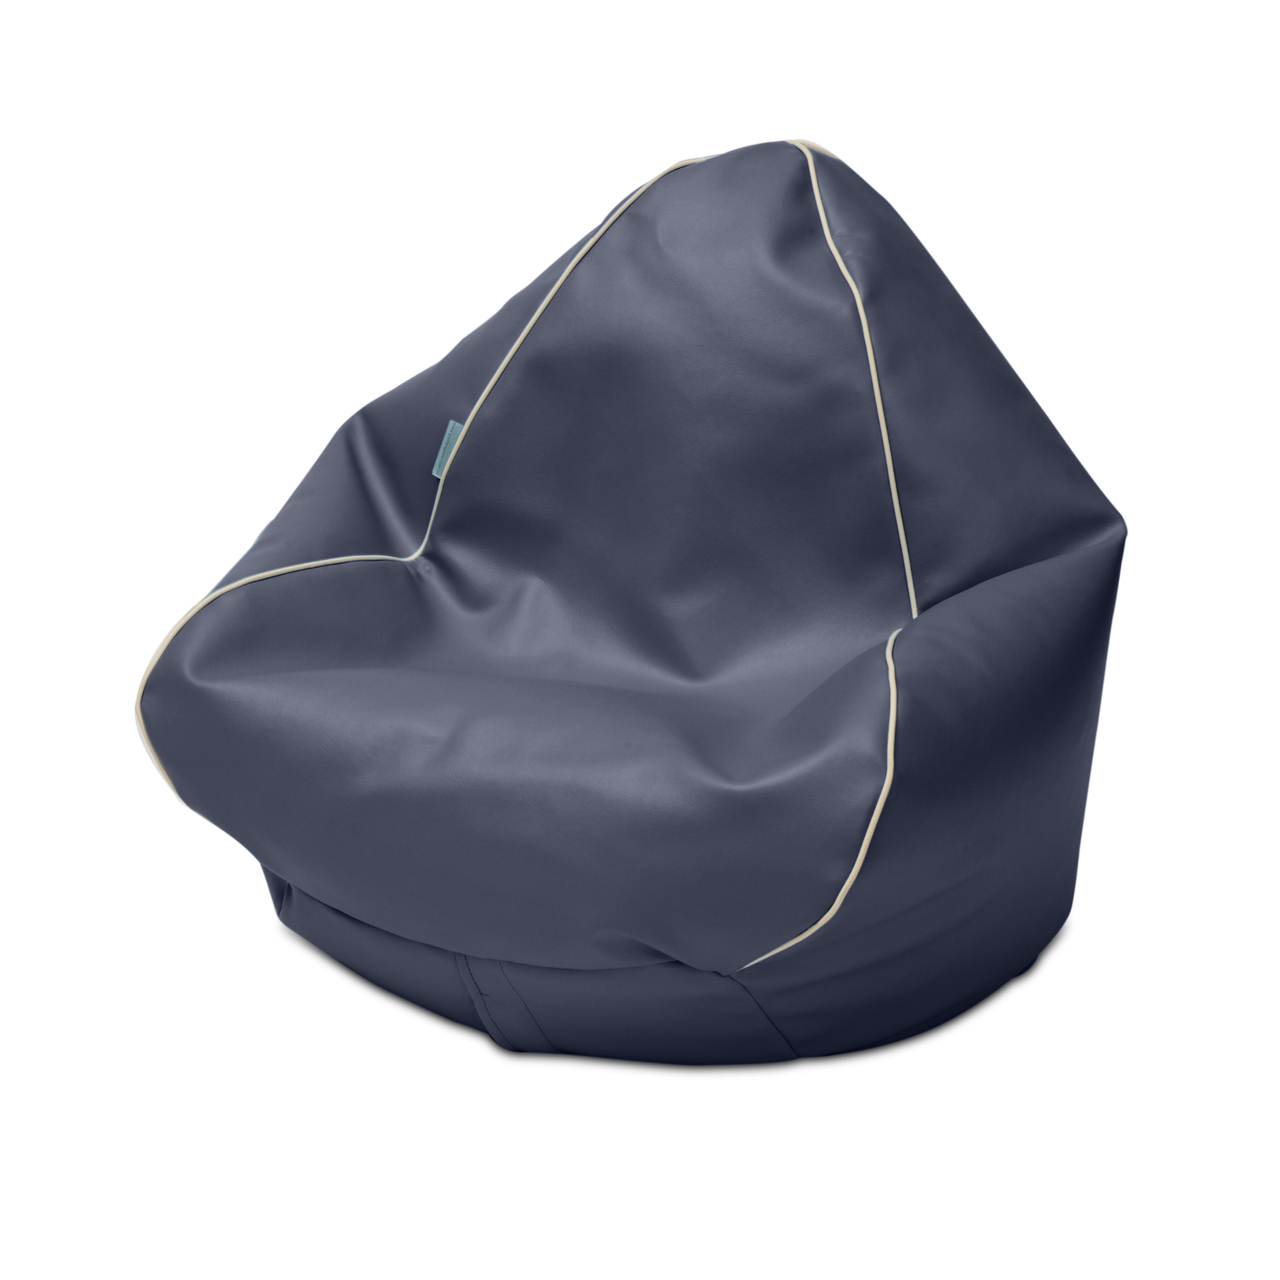 Retro Kids Bean Bag in navy